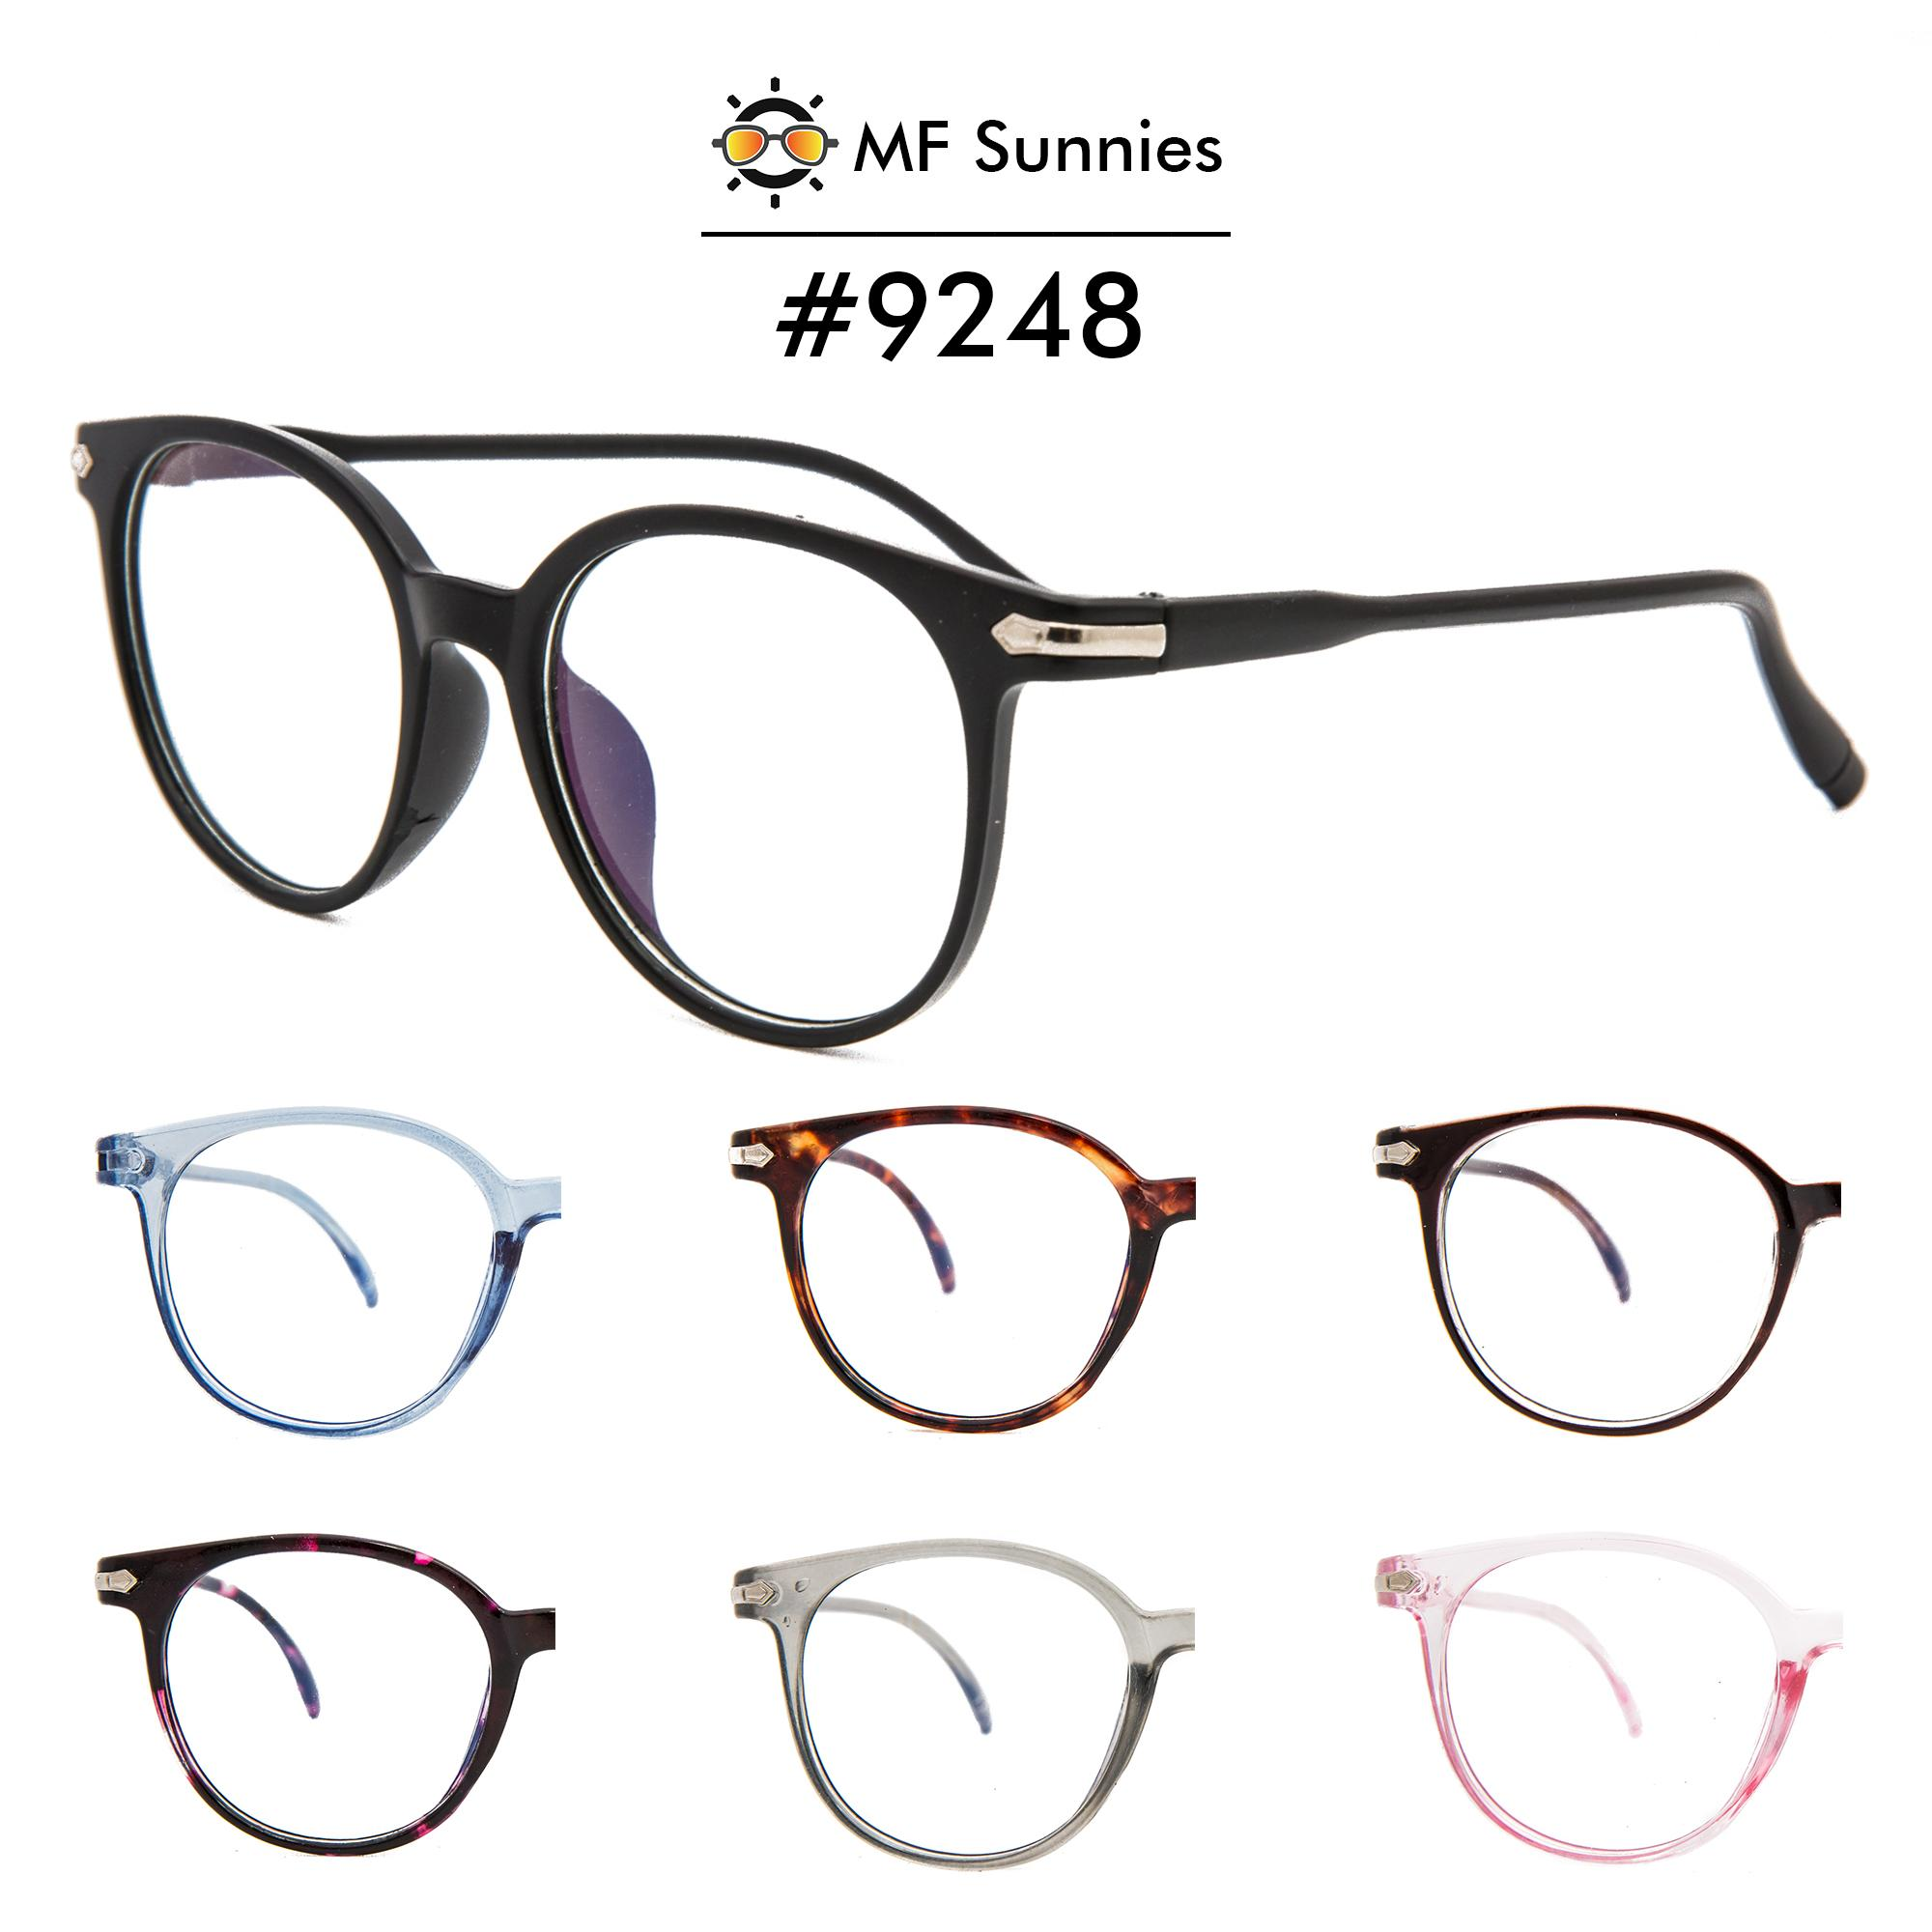 26bfc610868 MFSunnies Computer Anti-Radiation   Anti-Blue Light Flexible Frame Fashion  Eyewear  9248